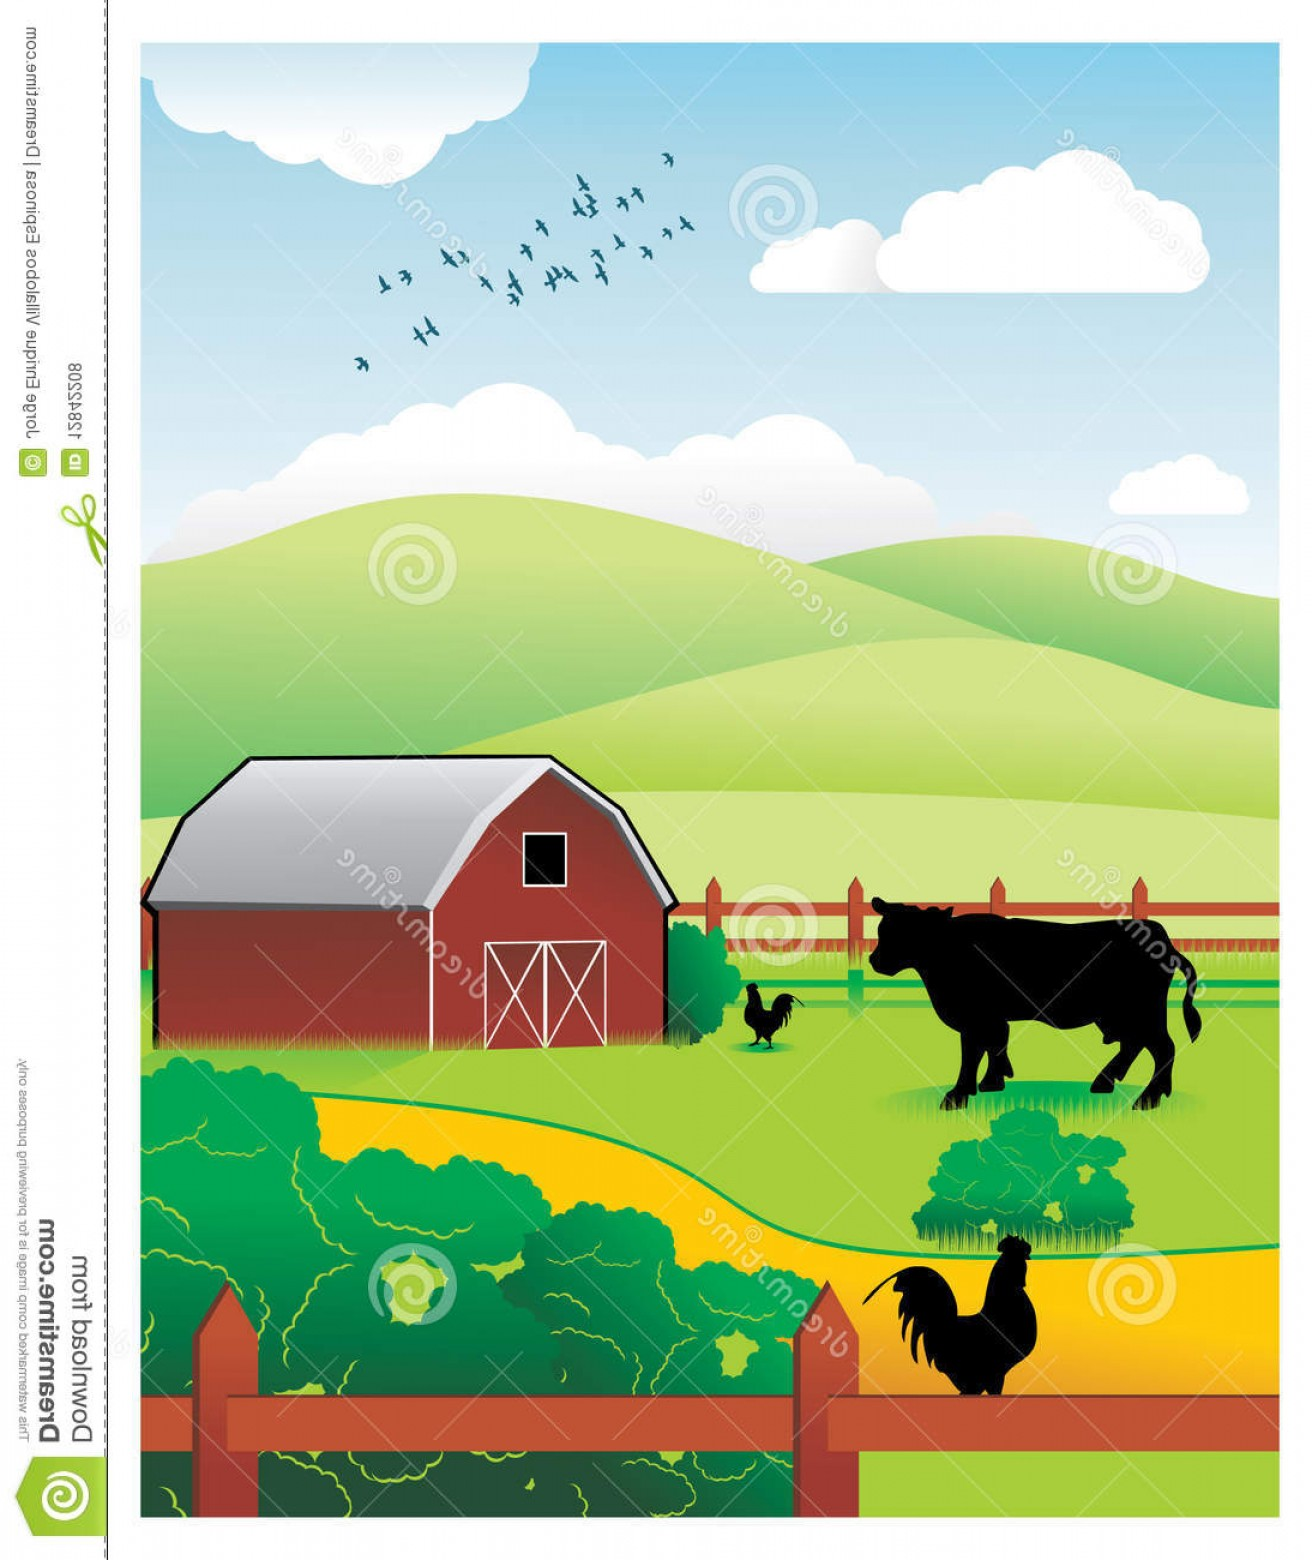 Farm Vector Illustration: Royalty Free Stock Photos Farm Vector Illustration Image